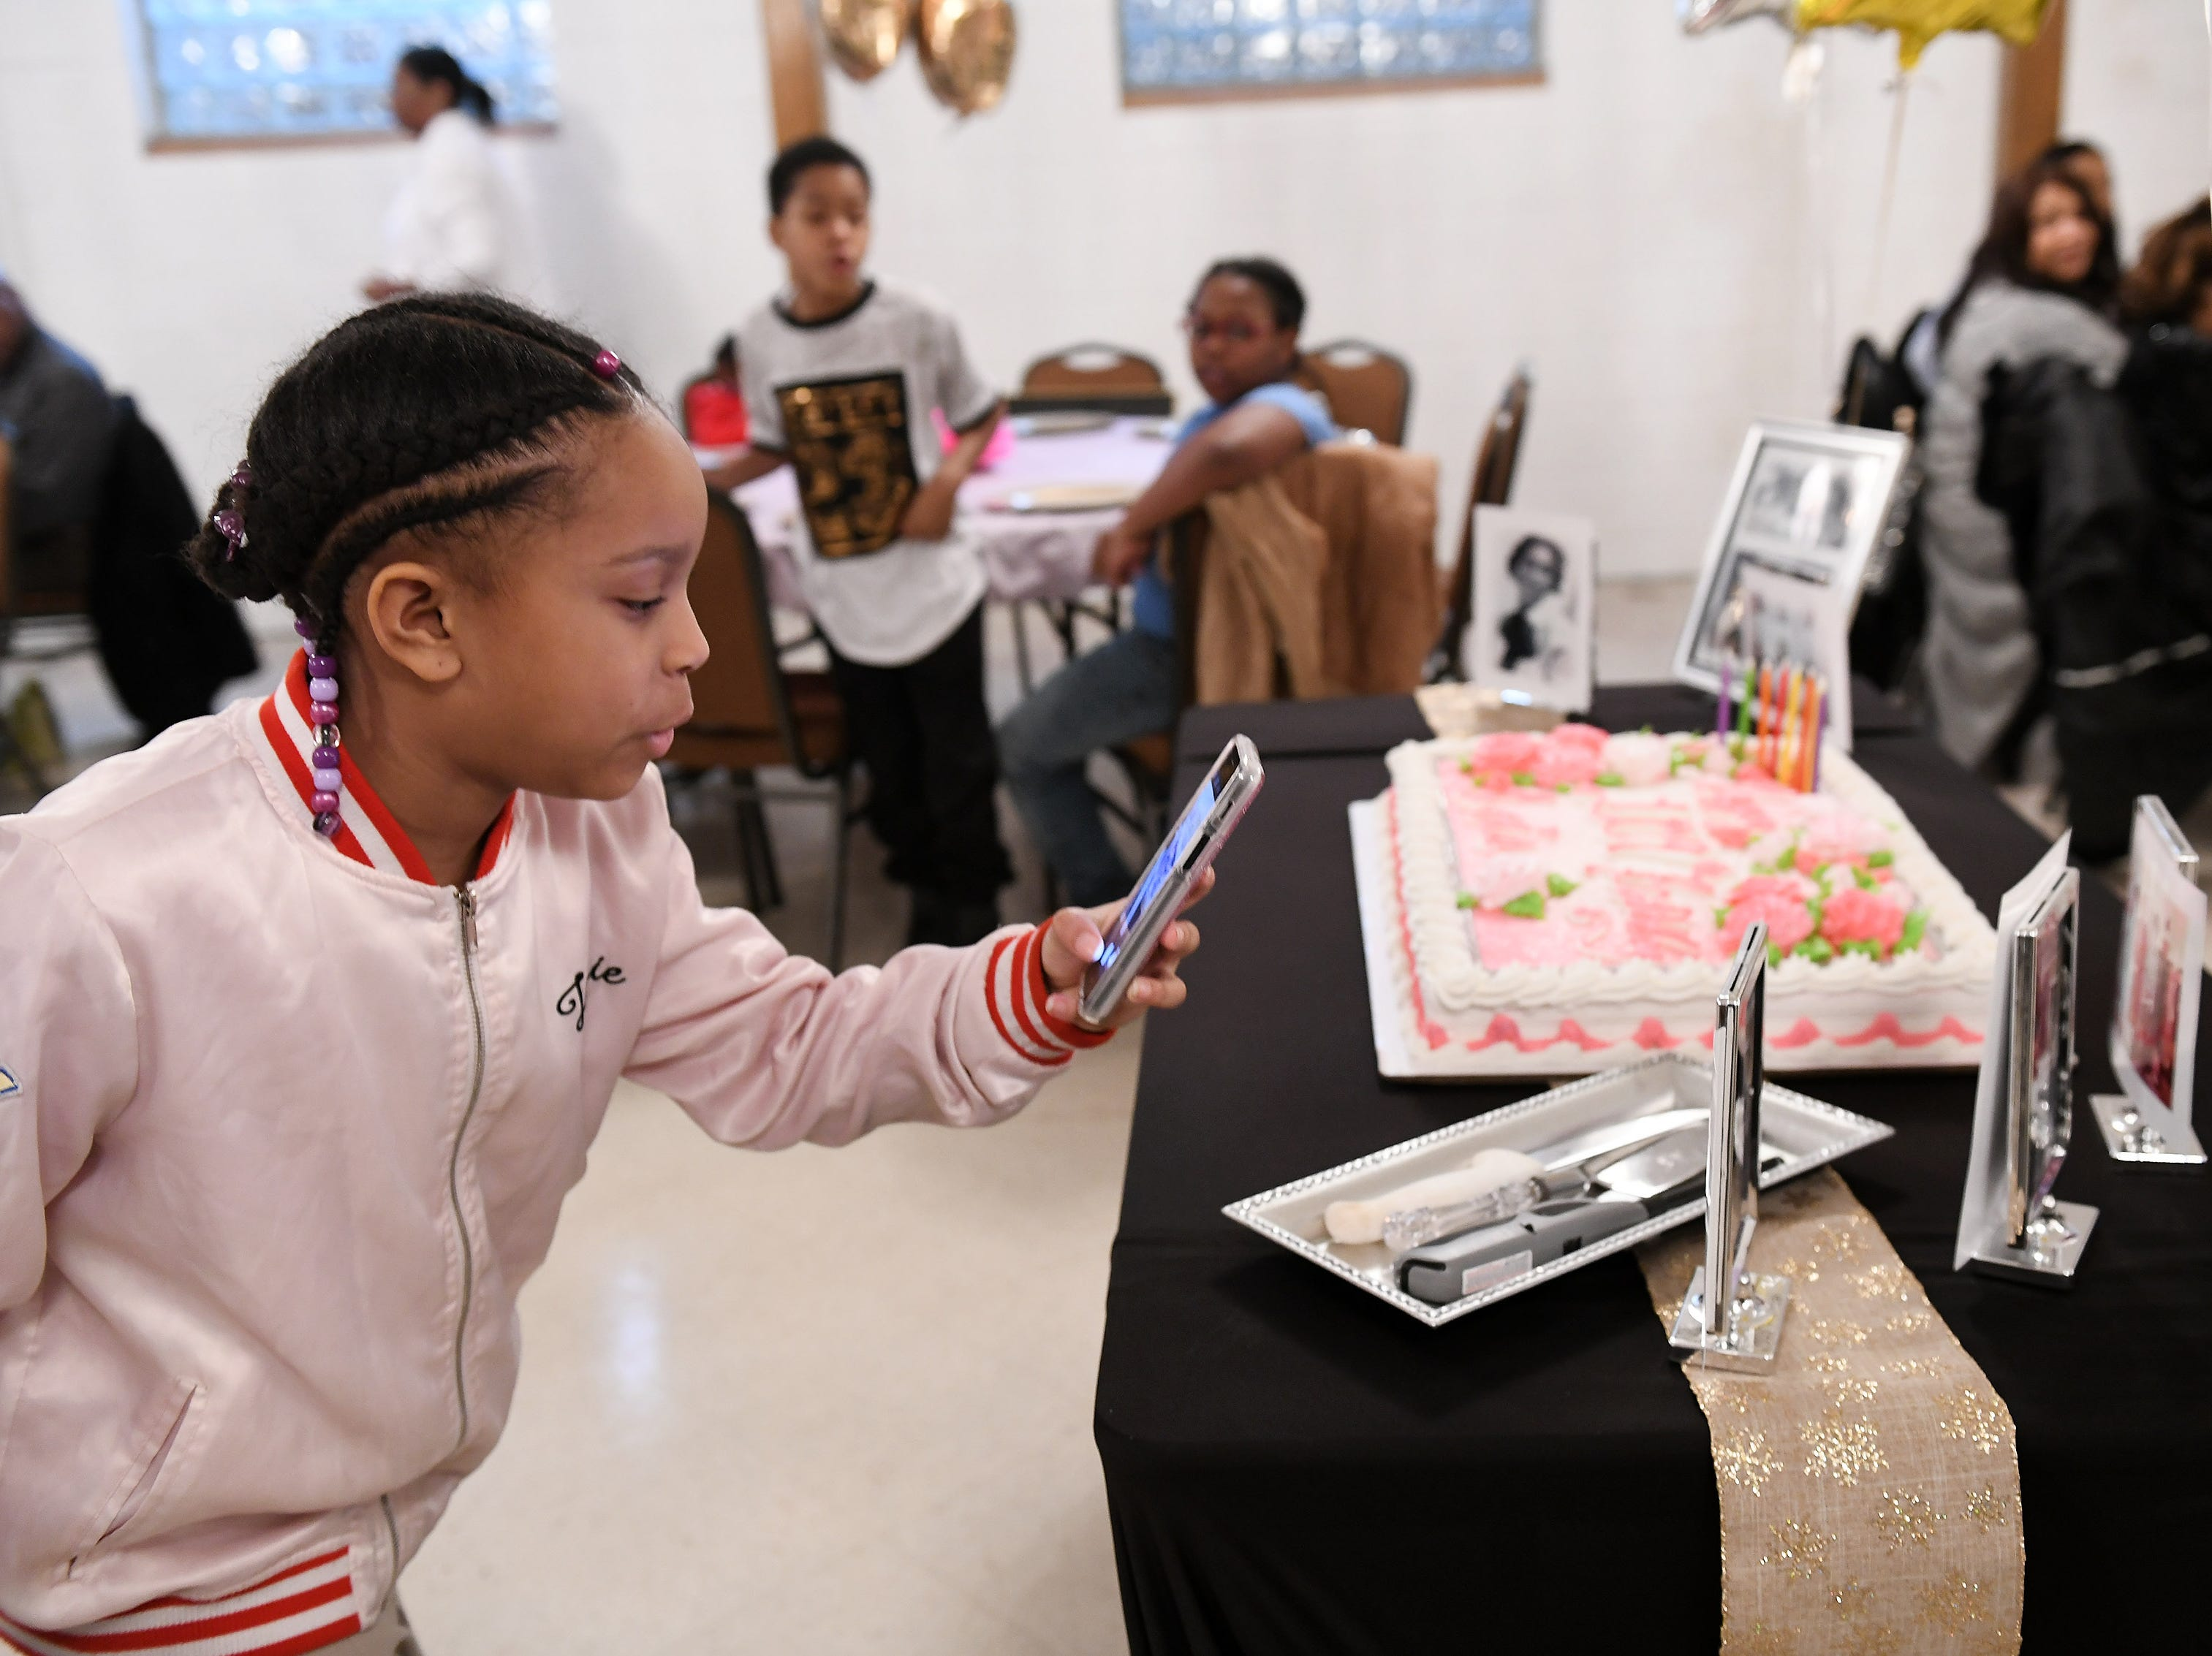 Bailey Williams, 9, takes photos of the photos and cake at the birthday celebration for Lois Holden.